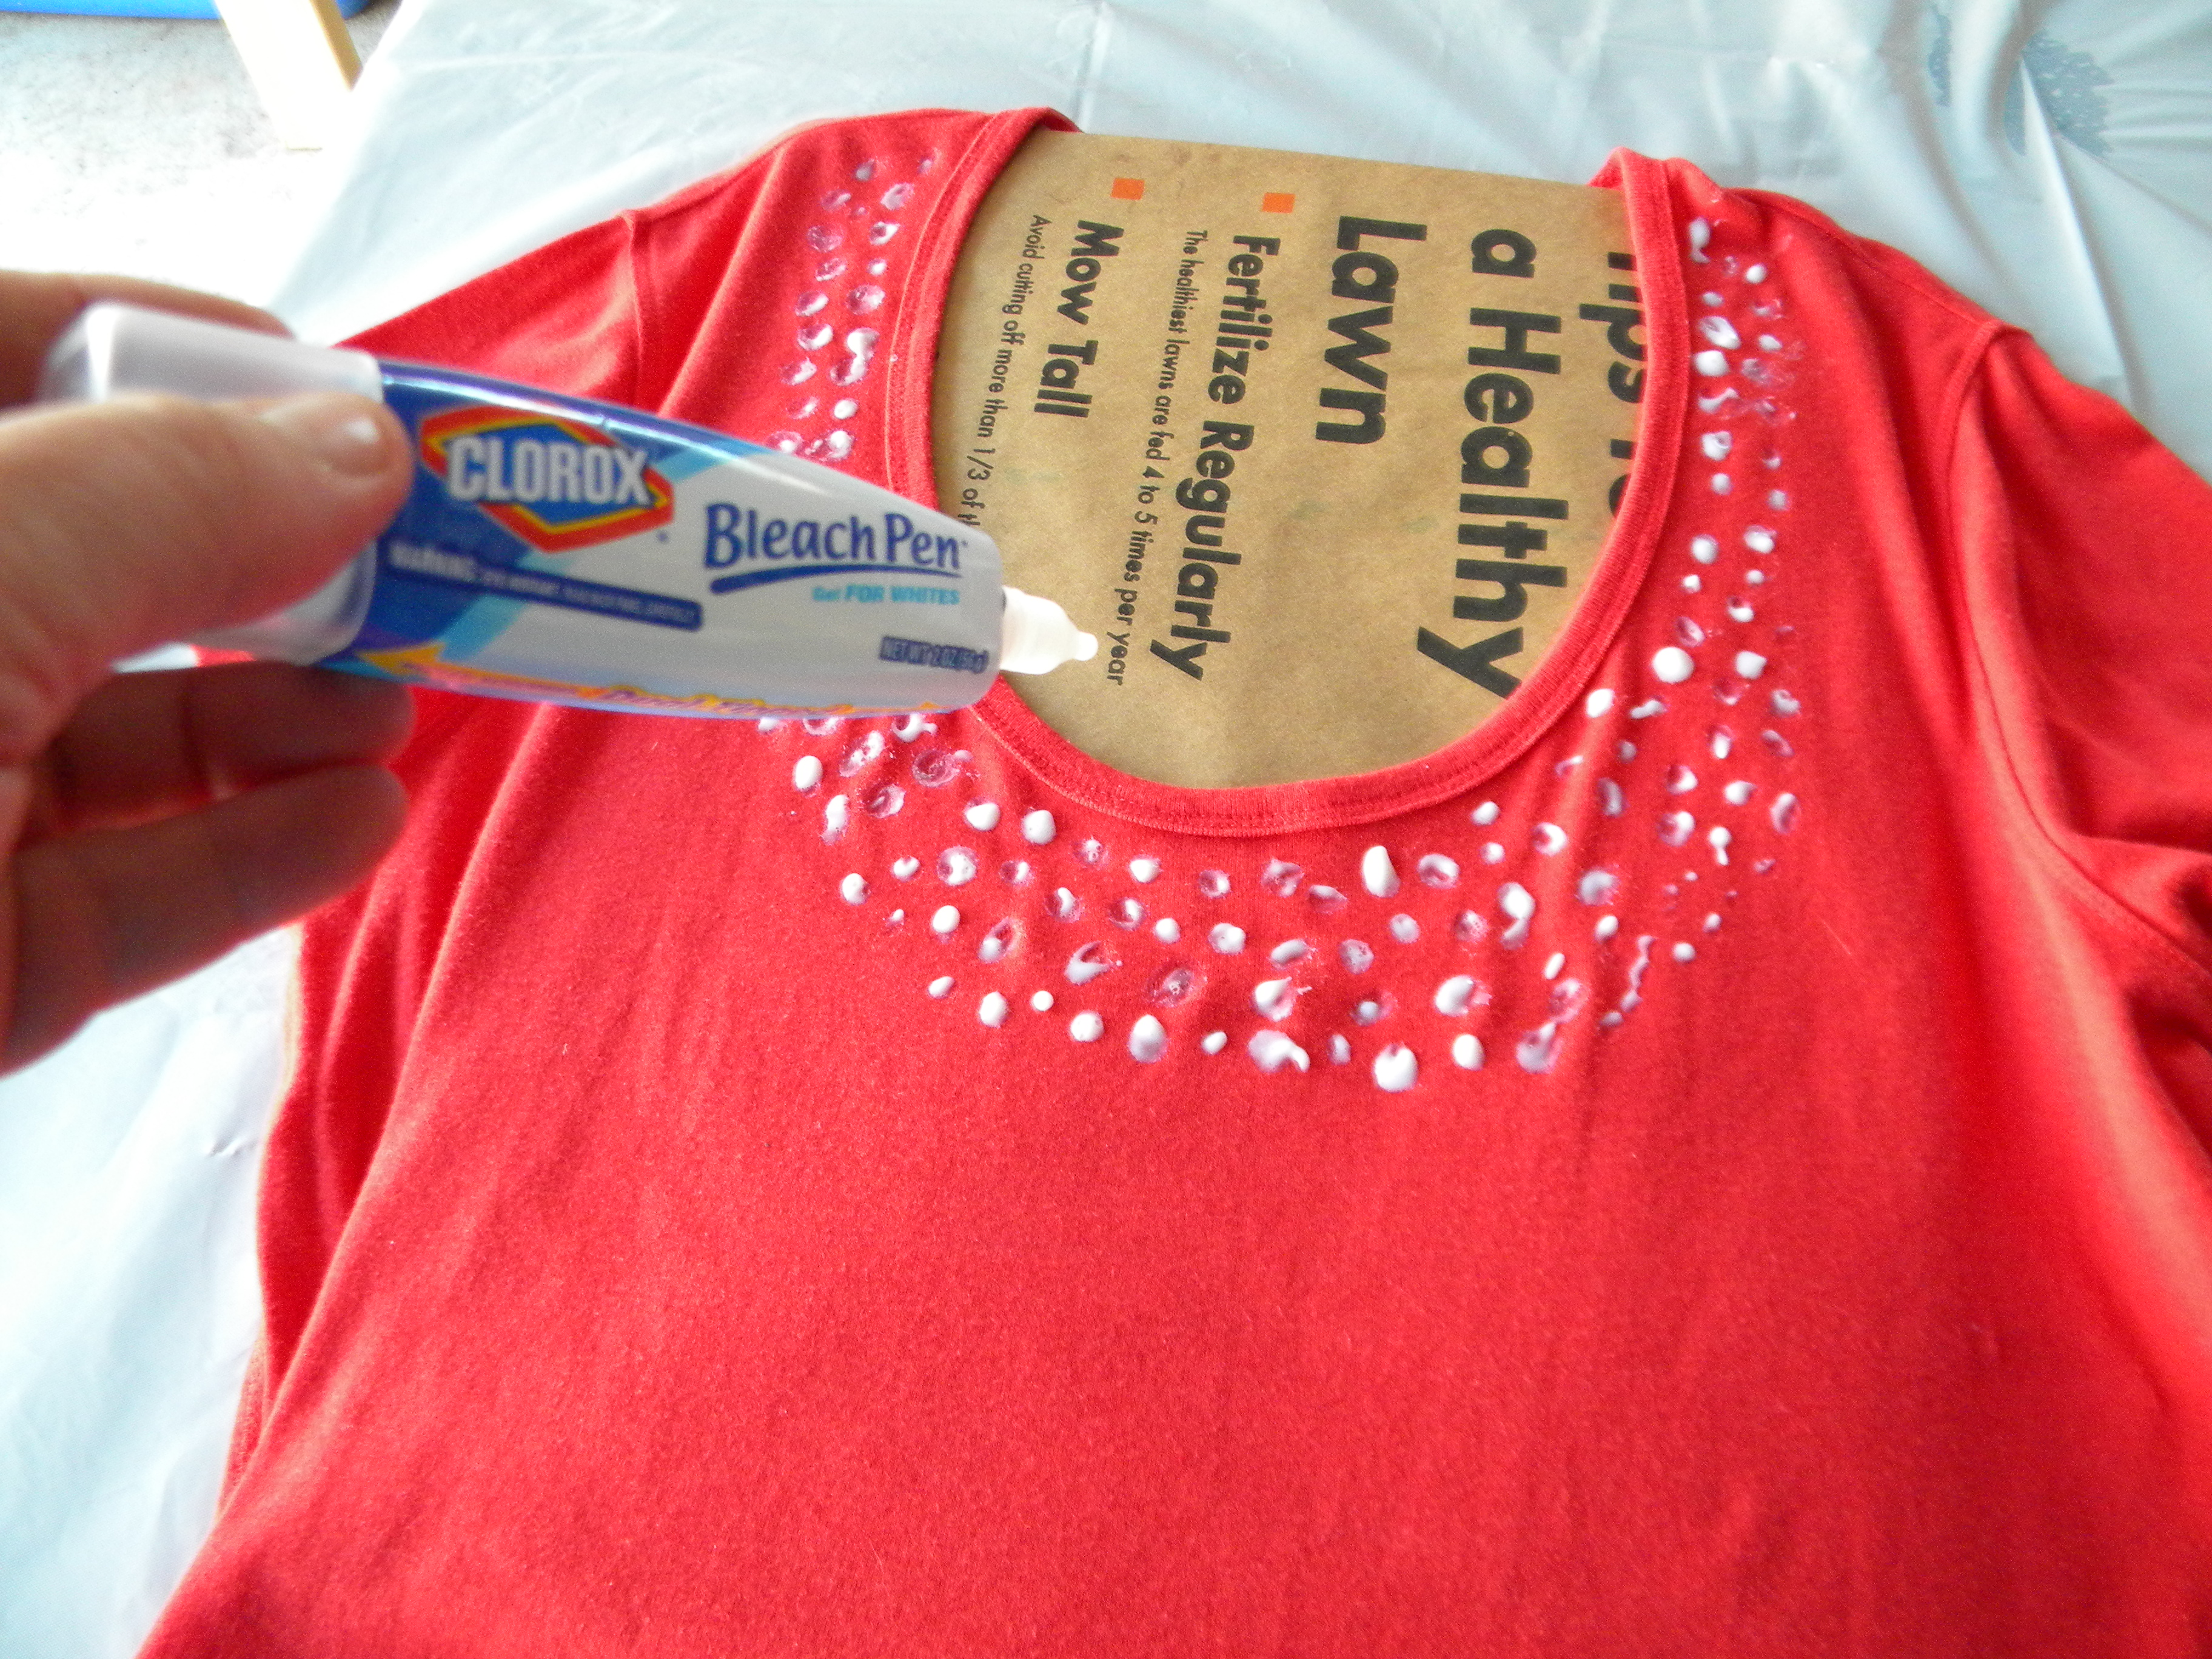 Bleach pen t shirt grandmother musings for How to bleach designs into shirts